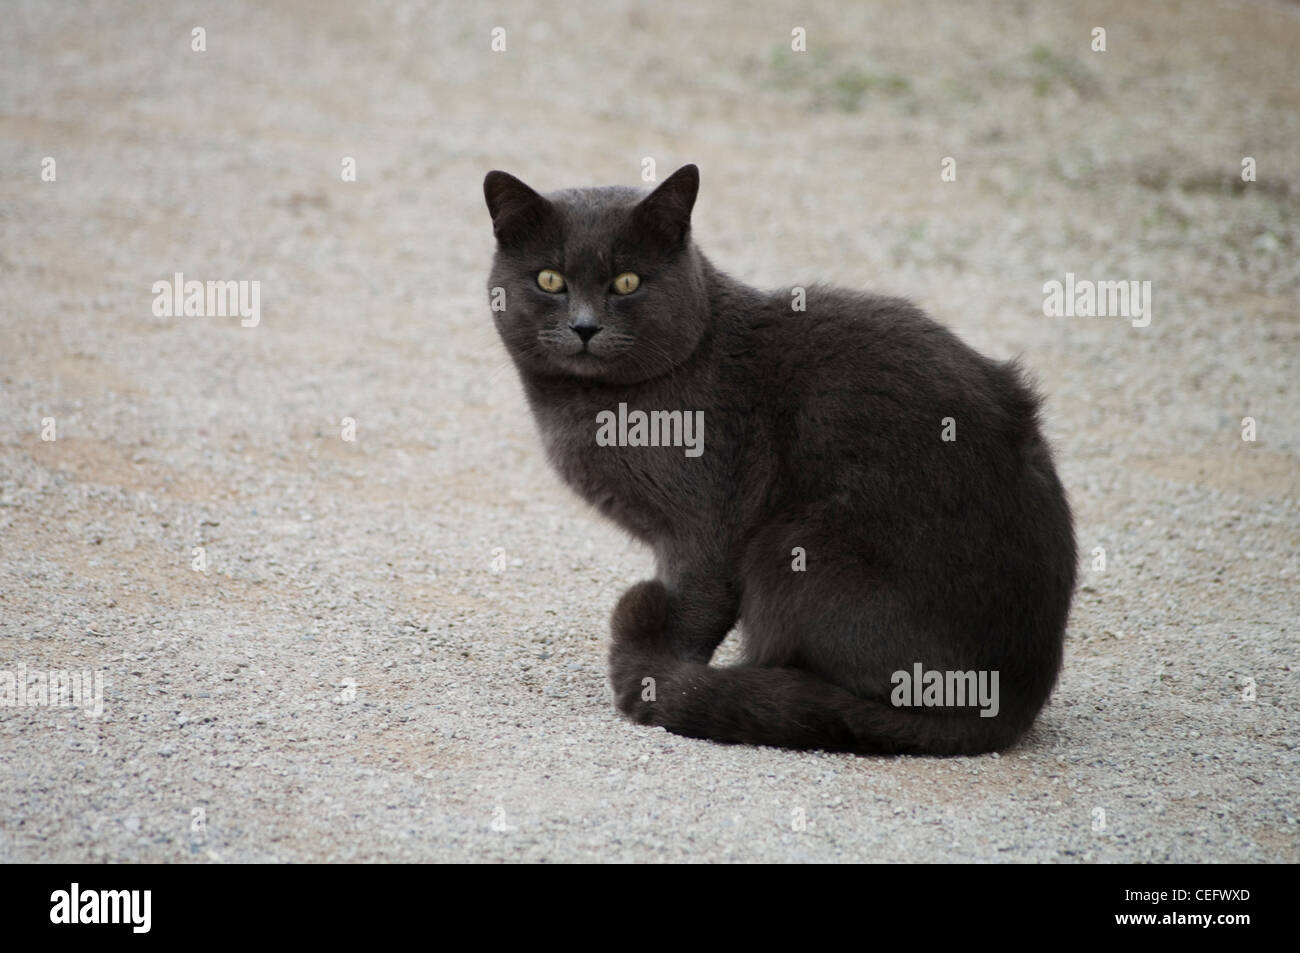 A beauty gray street cat  with yellow eyes looks at the camera. - Stock Image